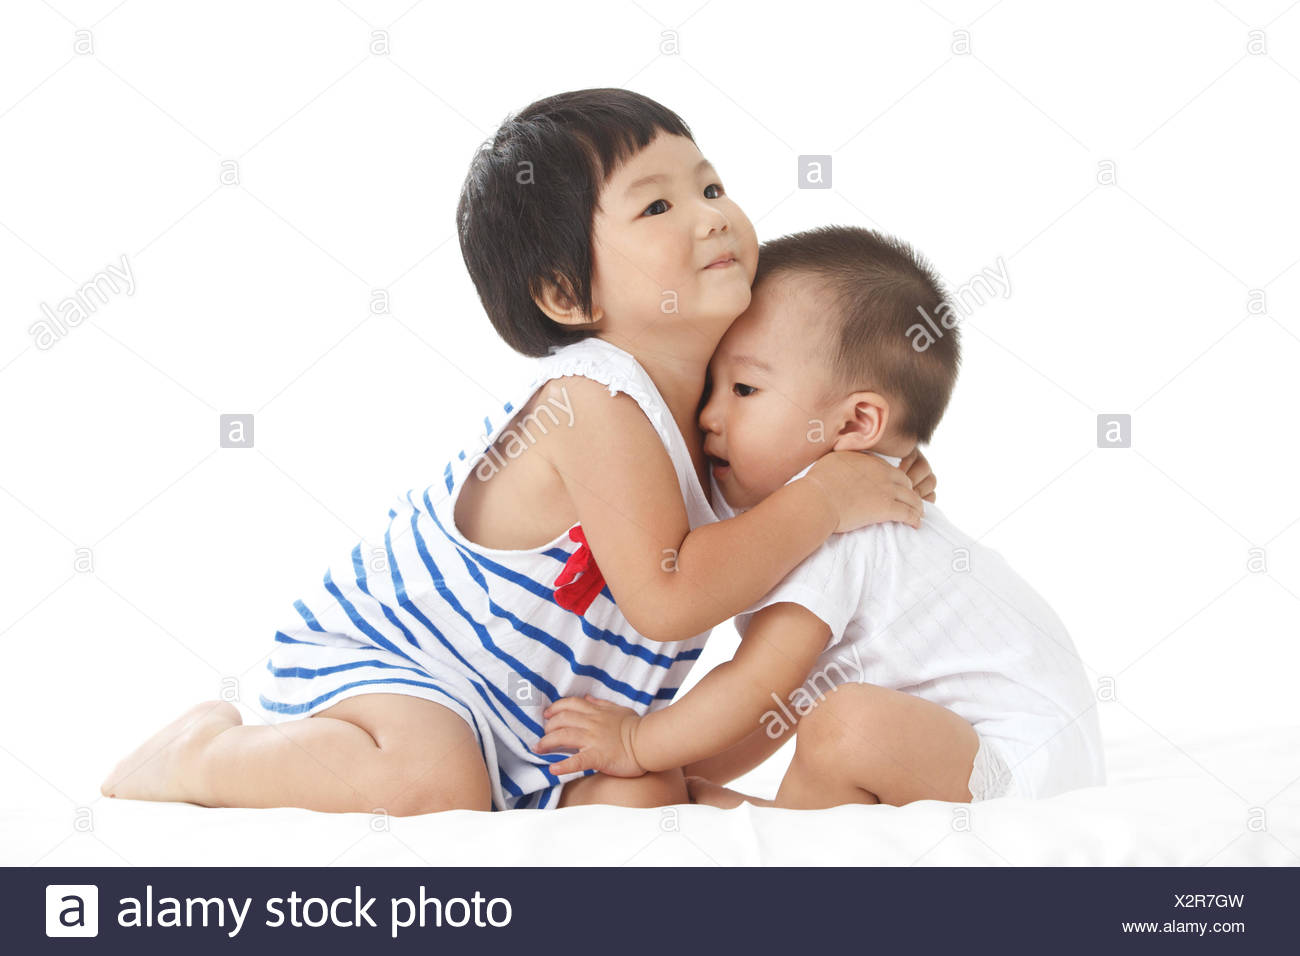 Elder sister and younger brother - Stock Image